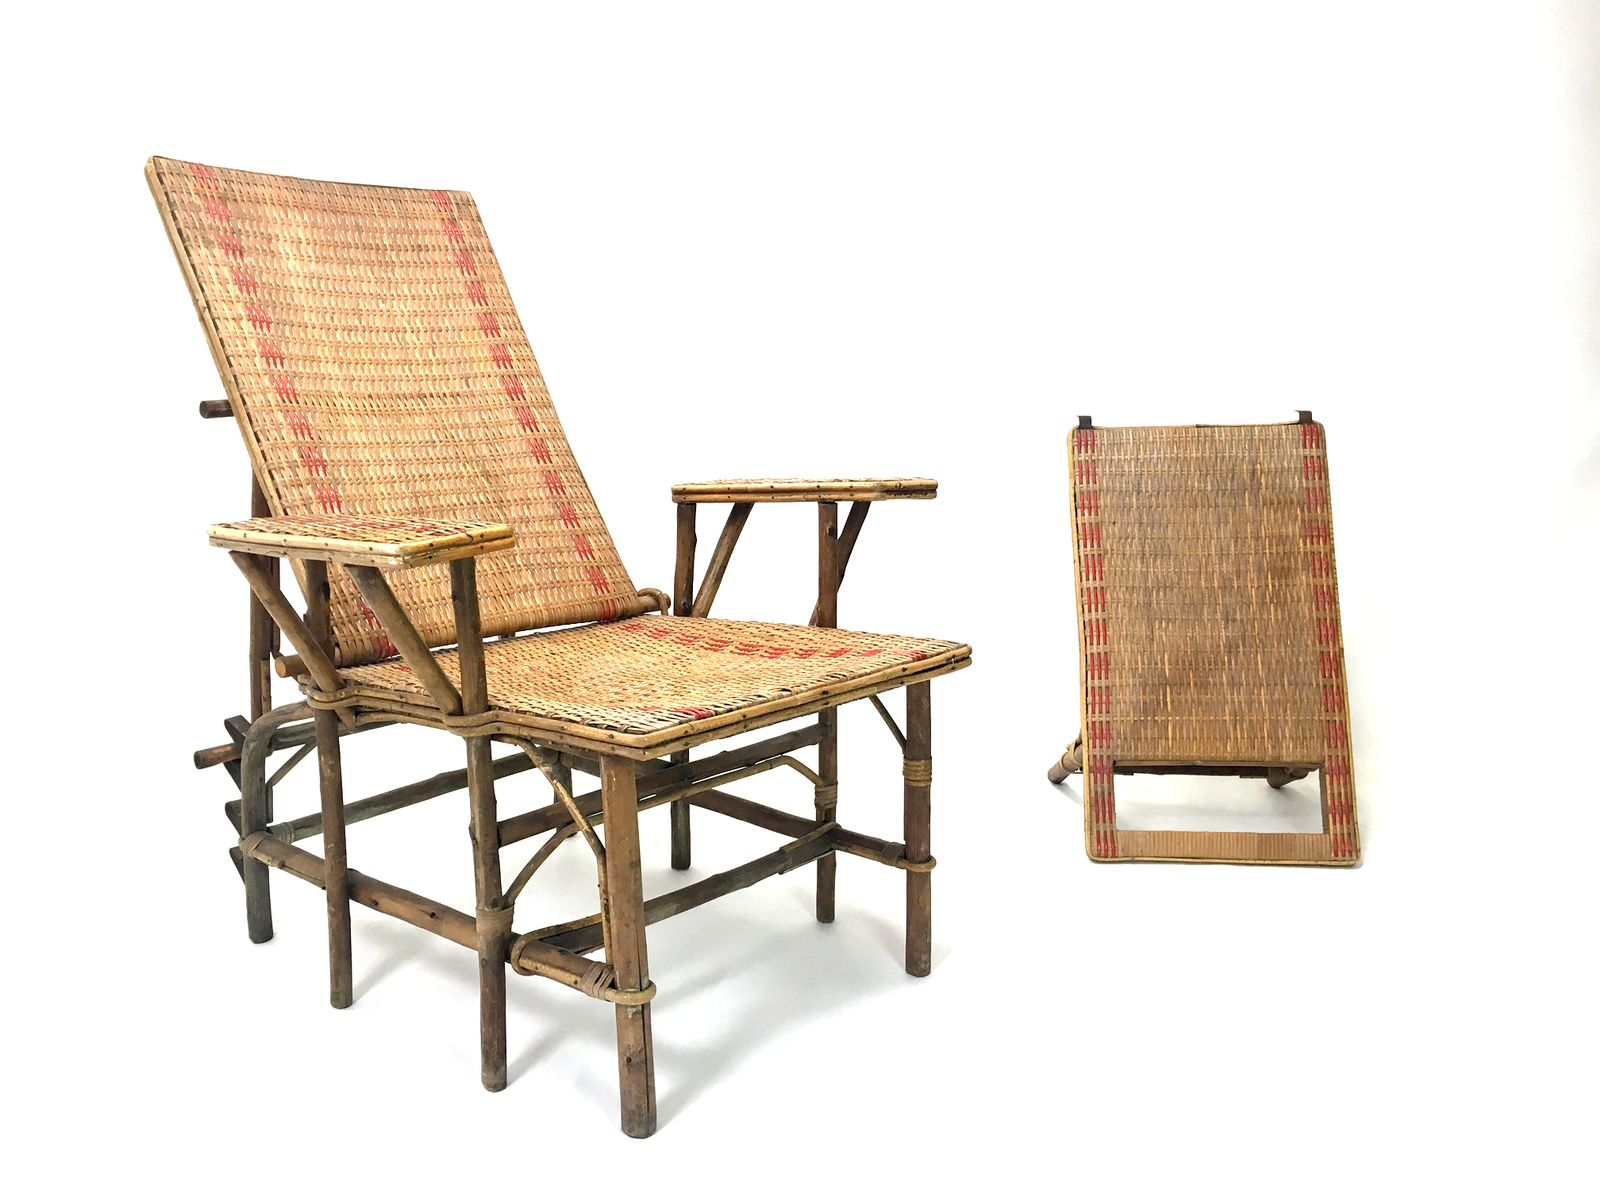 Chaiselongue rattan  French Wicker And Bamboo Chaise Longue with Footrest, 1920s for ...